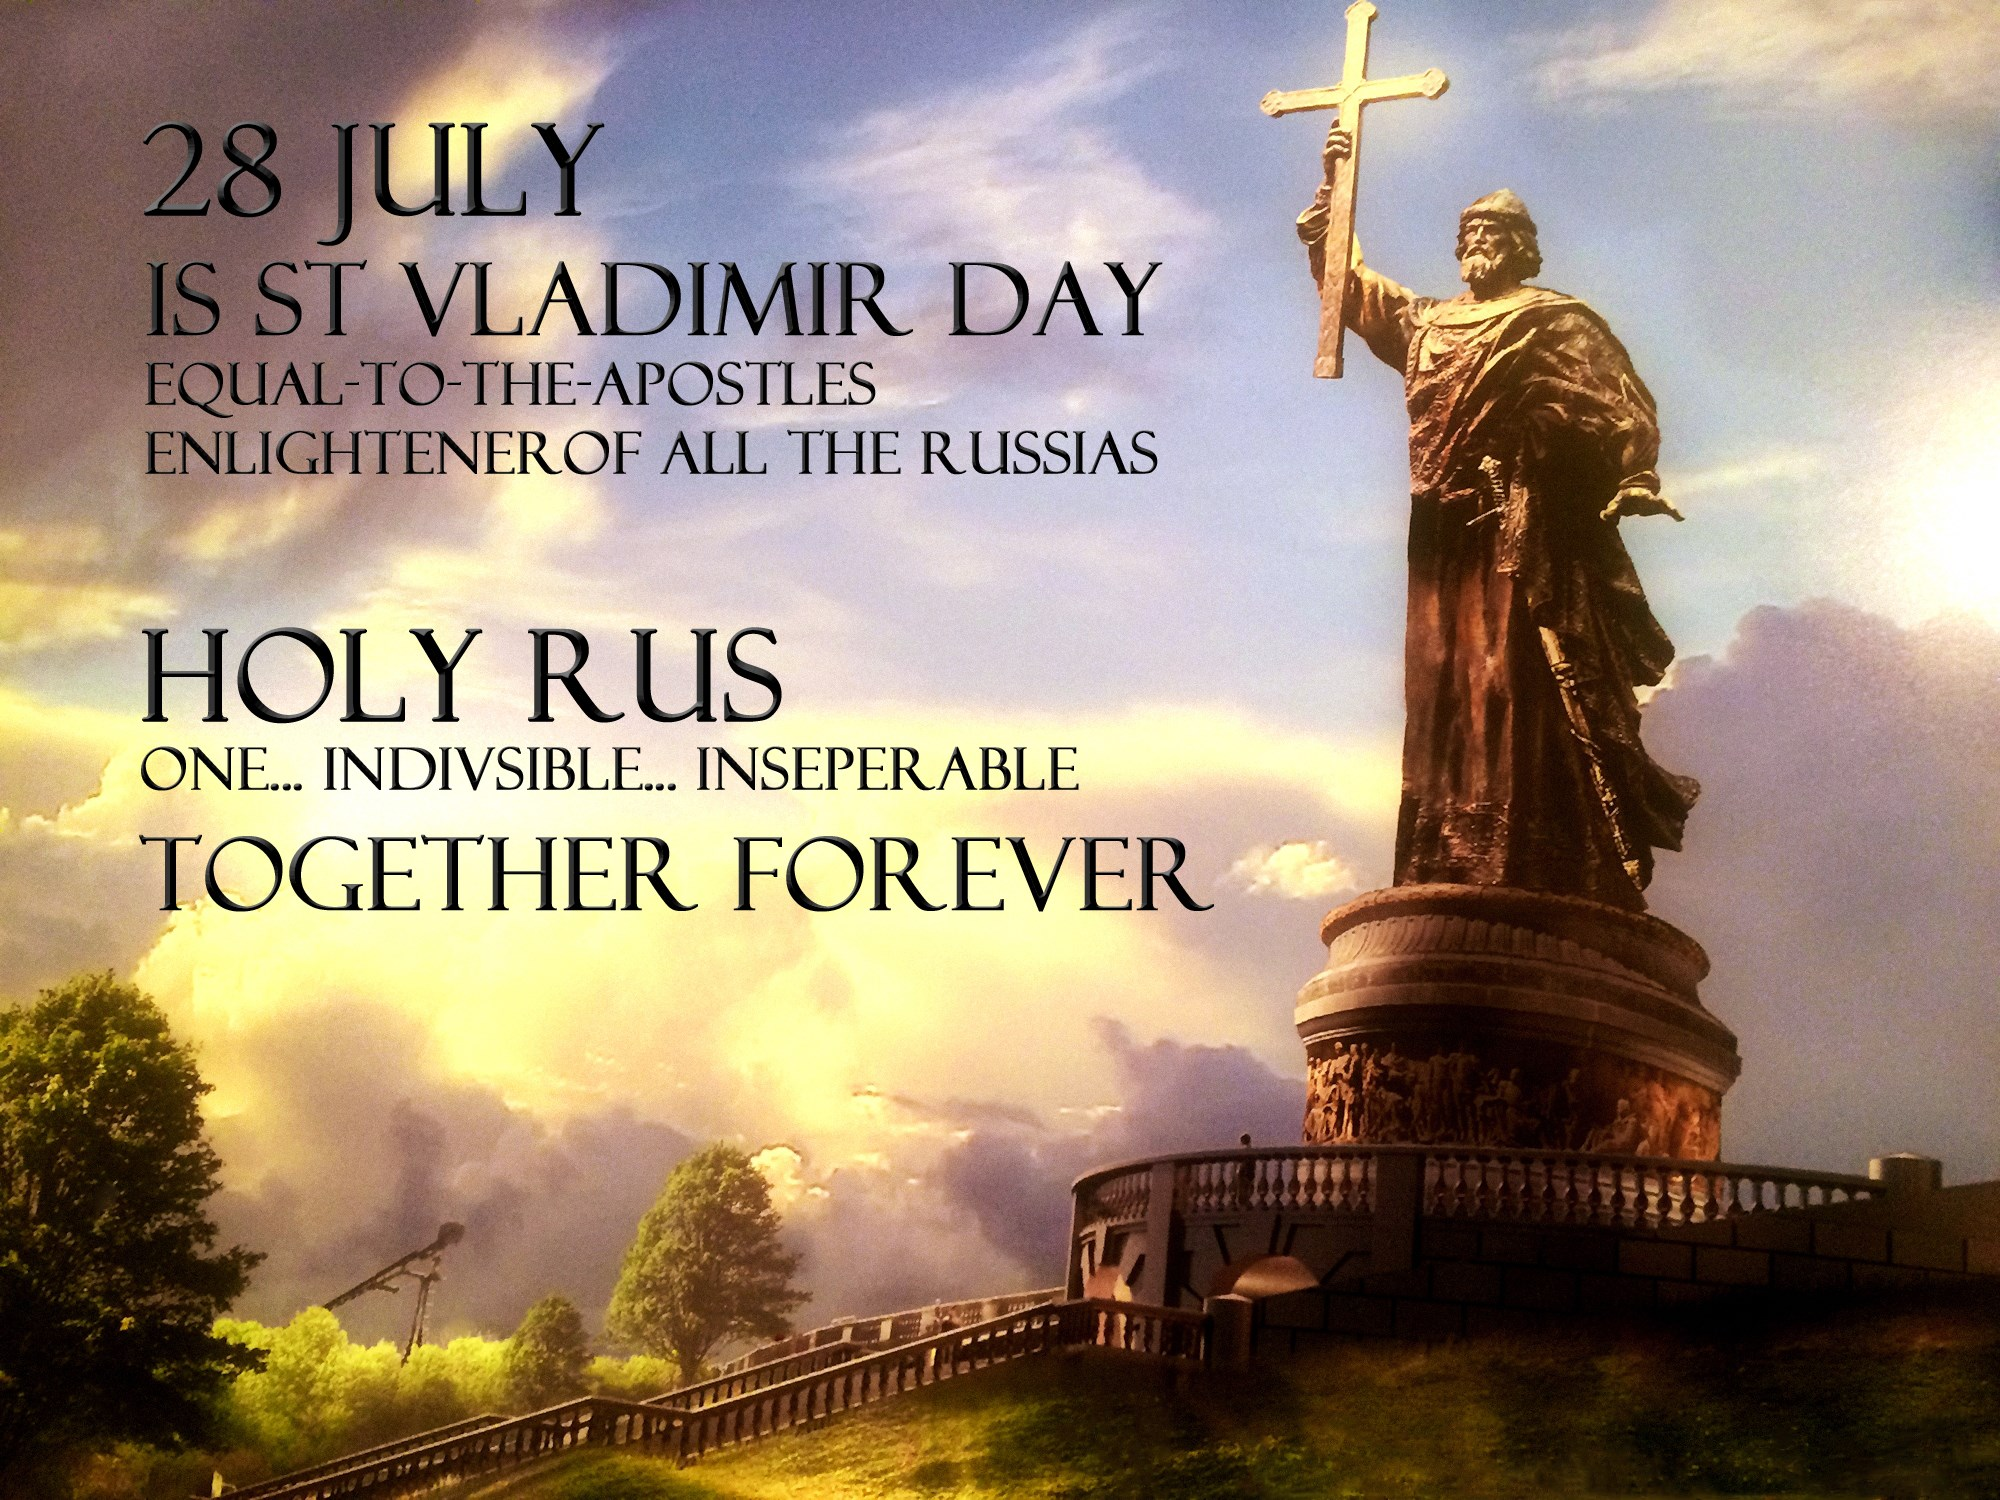 00 28 july is st vladimir day 01. 280715